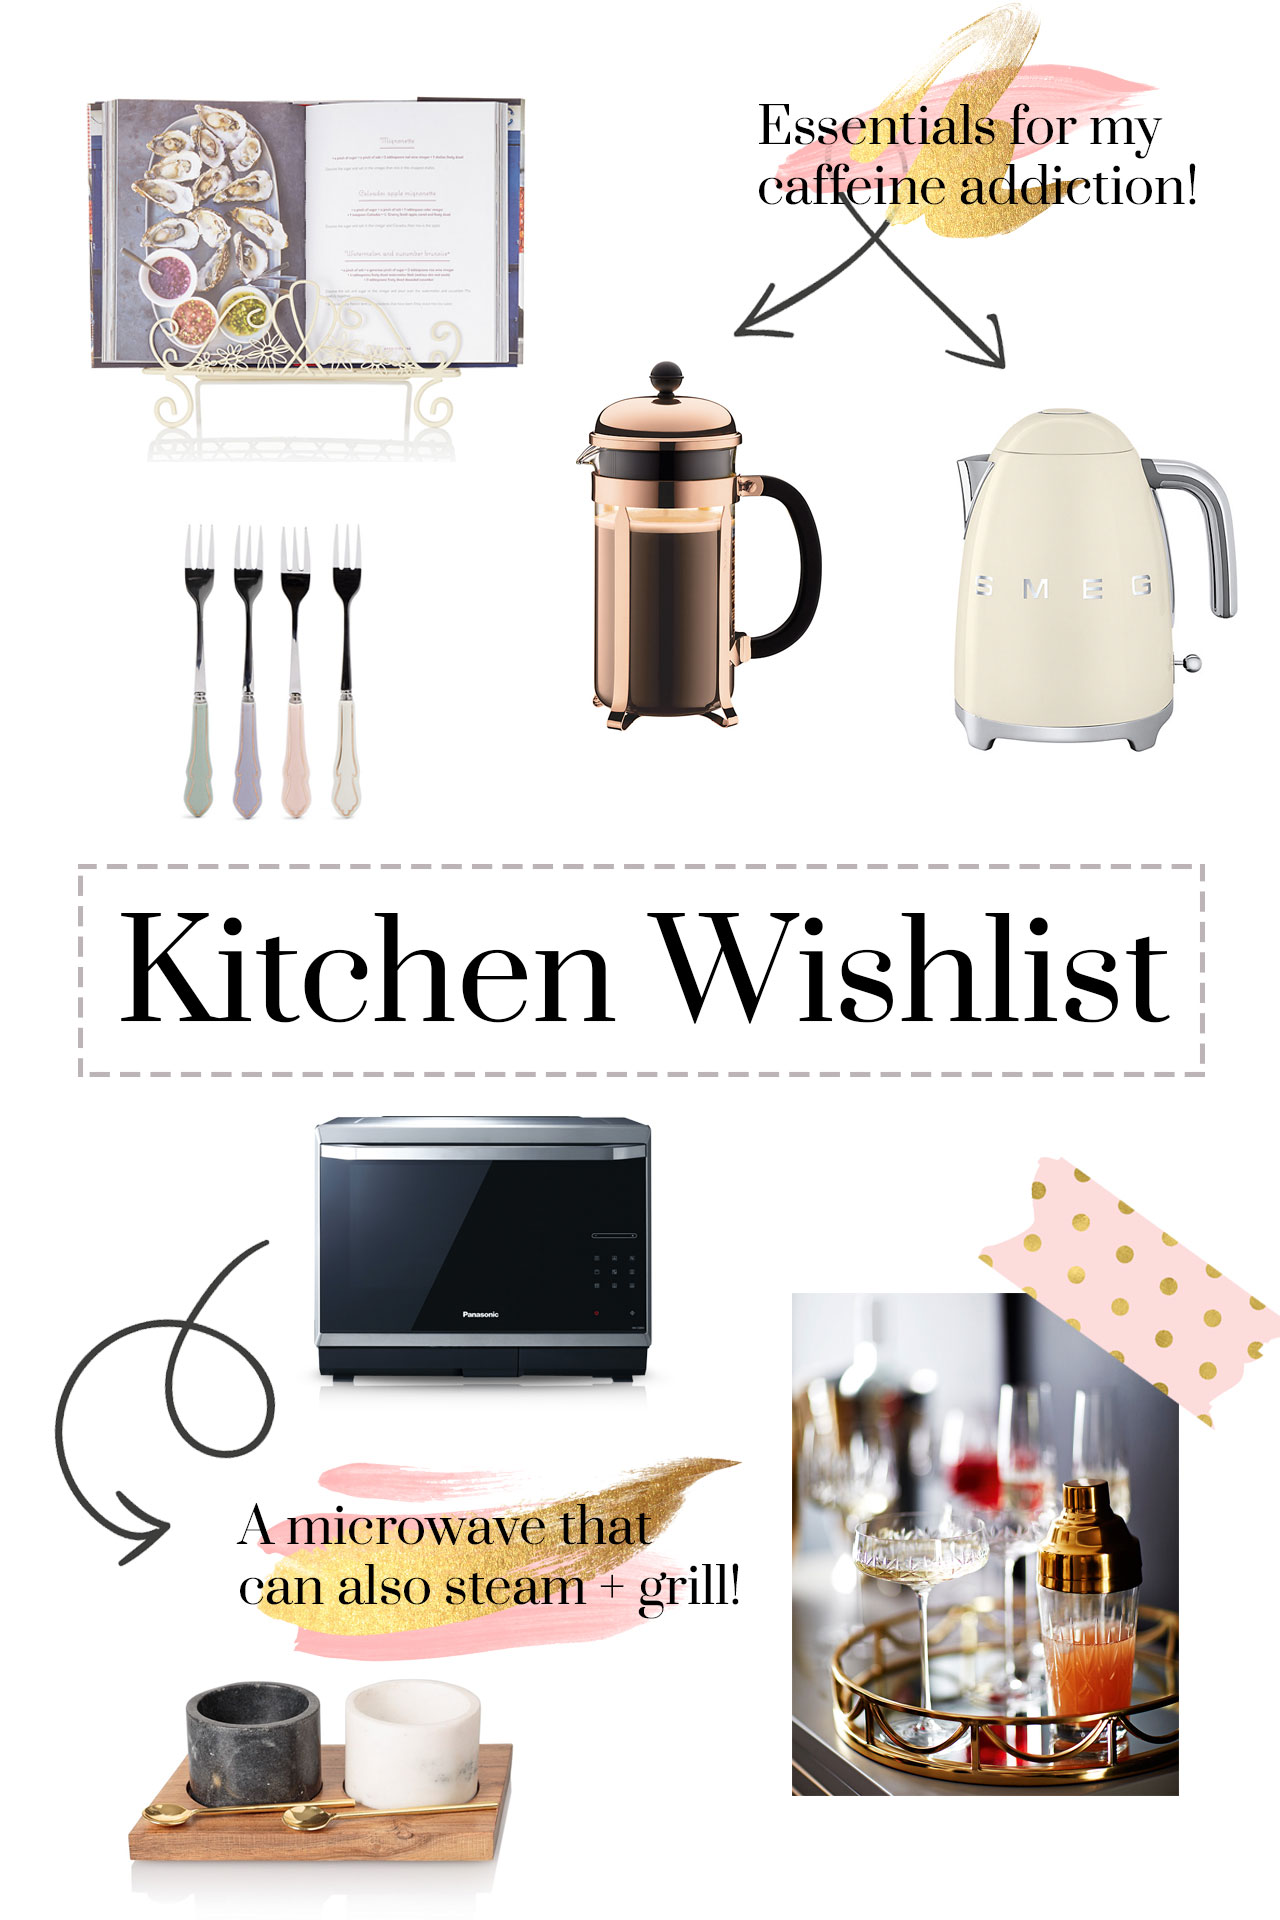 Kitchen wish list - kitchen appliances and homeware that I am lusting after!